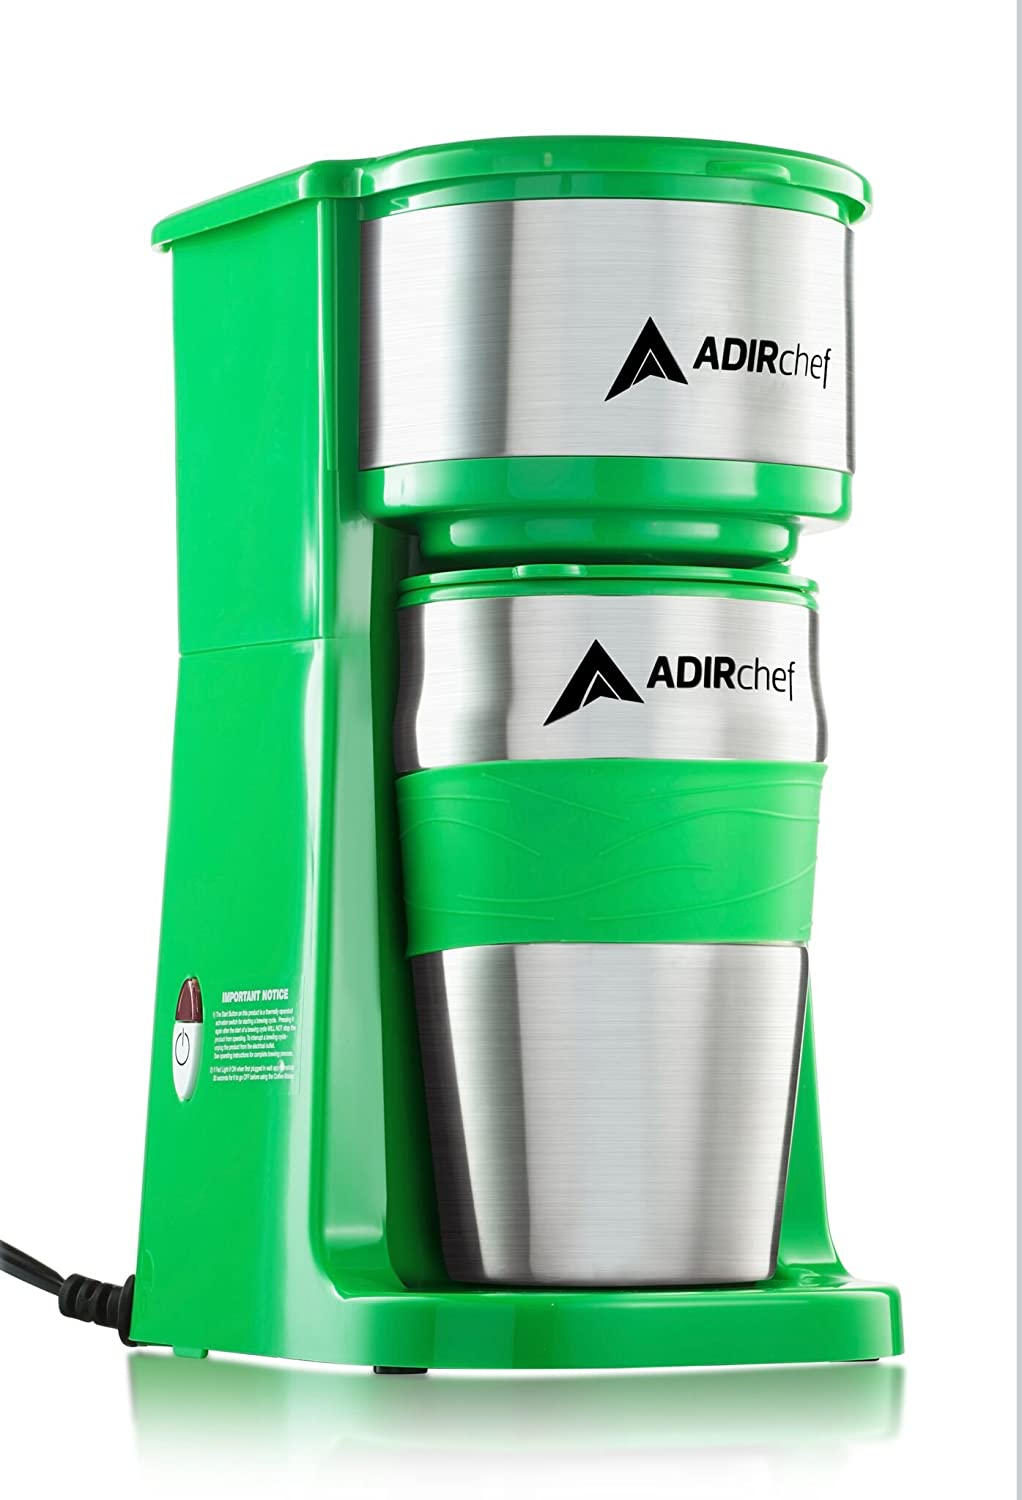 AdirChef Grab N' Go Personal Coffee Maker with 15 oz. Travel Mug (Green)